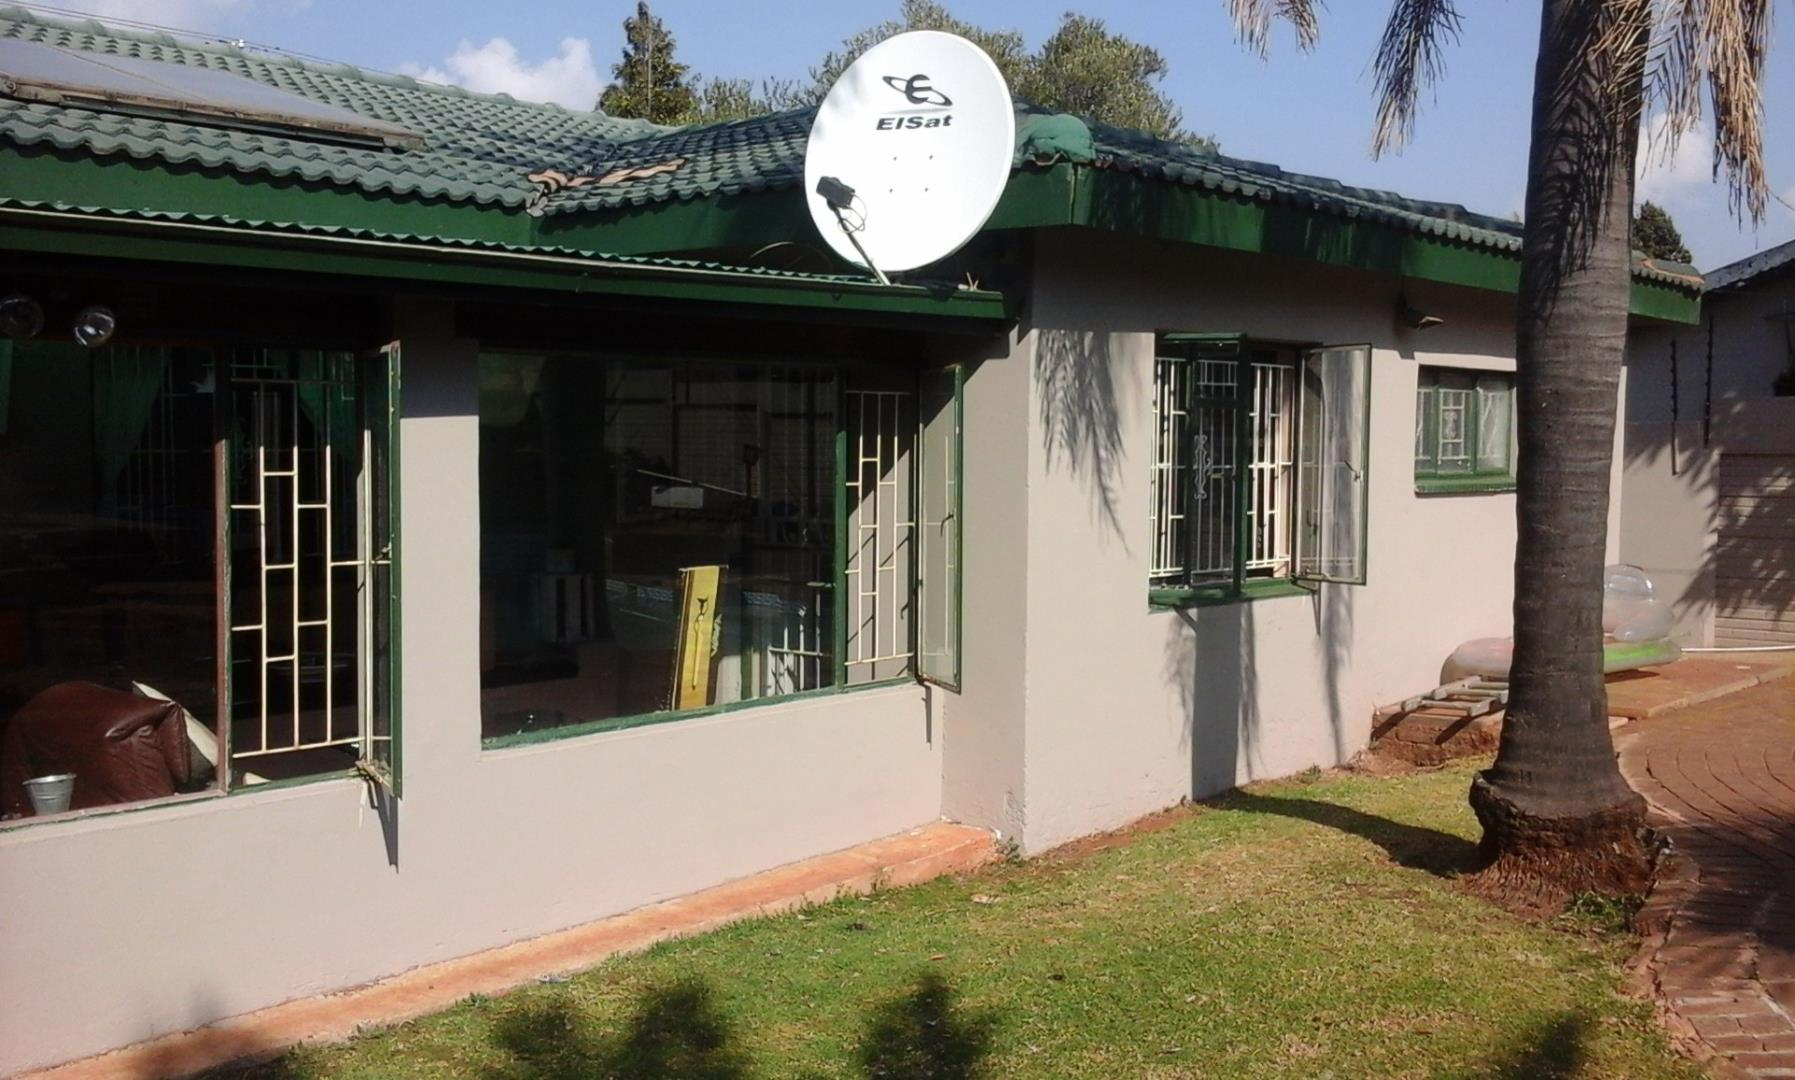 Johannesburg, Suideroord Property  | Houses For Sale Suideroord, Suideroord, House 3 bedrooms property for sale Price:1,500,000